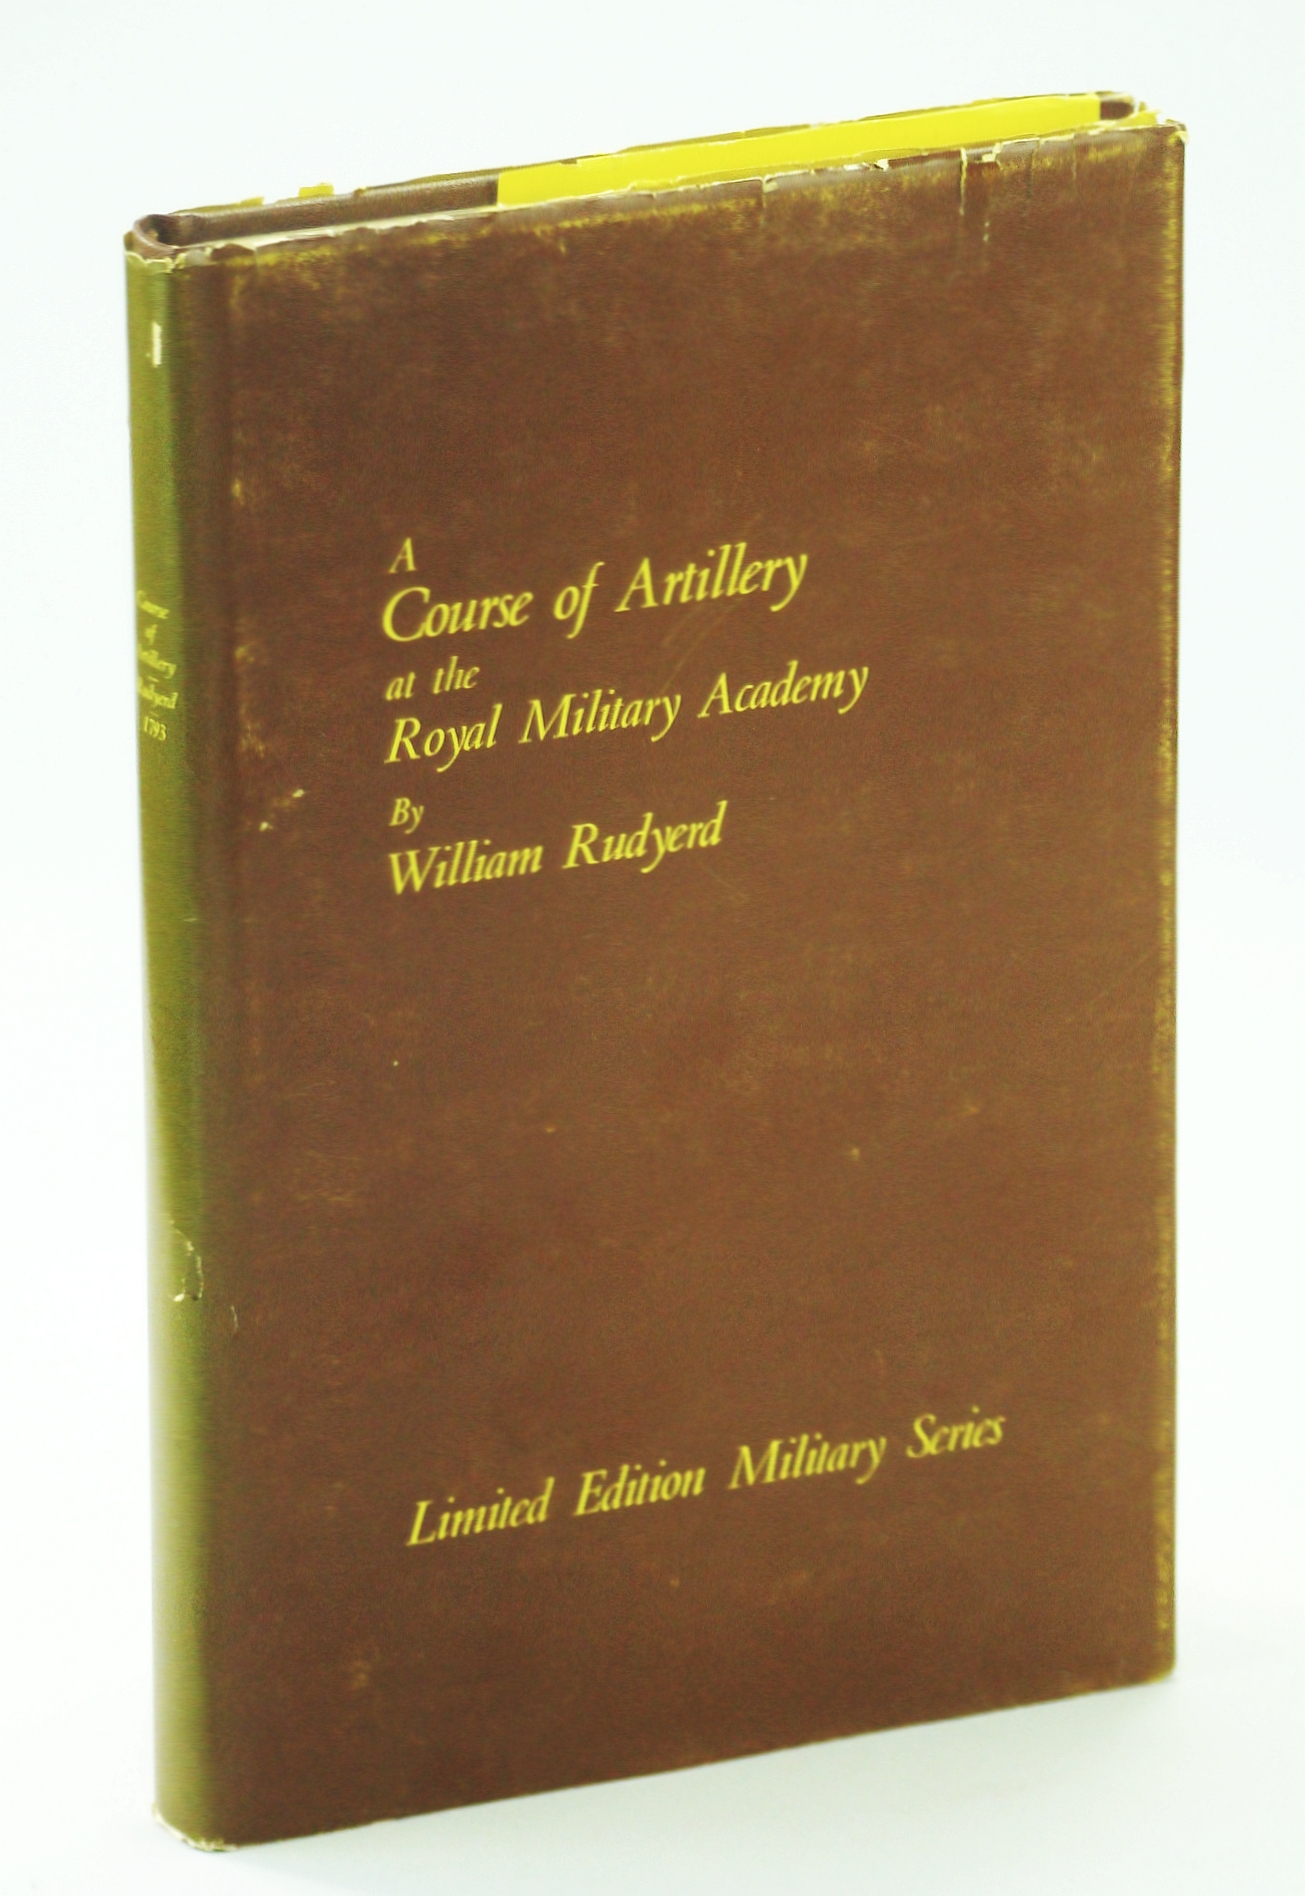 Image for A Course of Artillery at the Royal Military Academy as Established By His Grace The Duke of Richmond Master General of His Majesty's Ordnance - Limited Edition Military Series